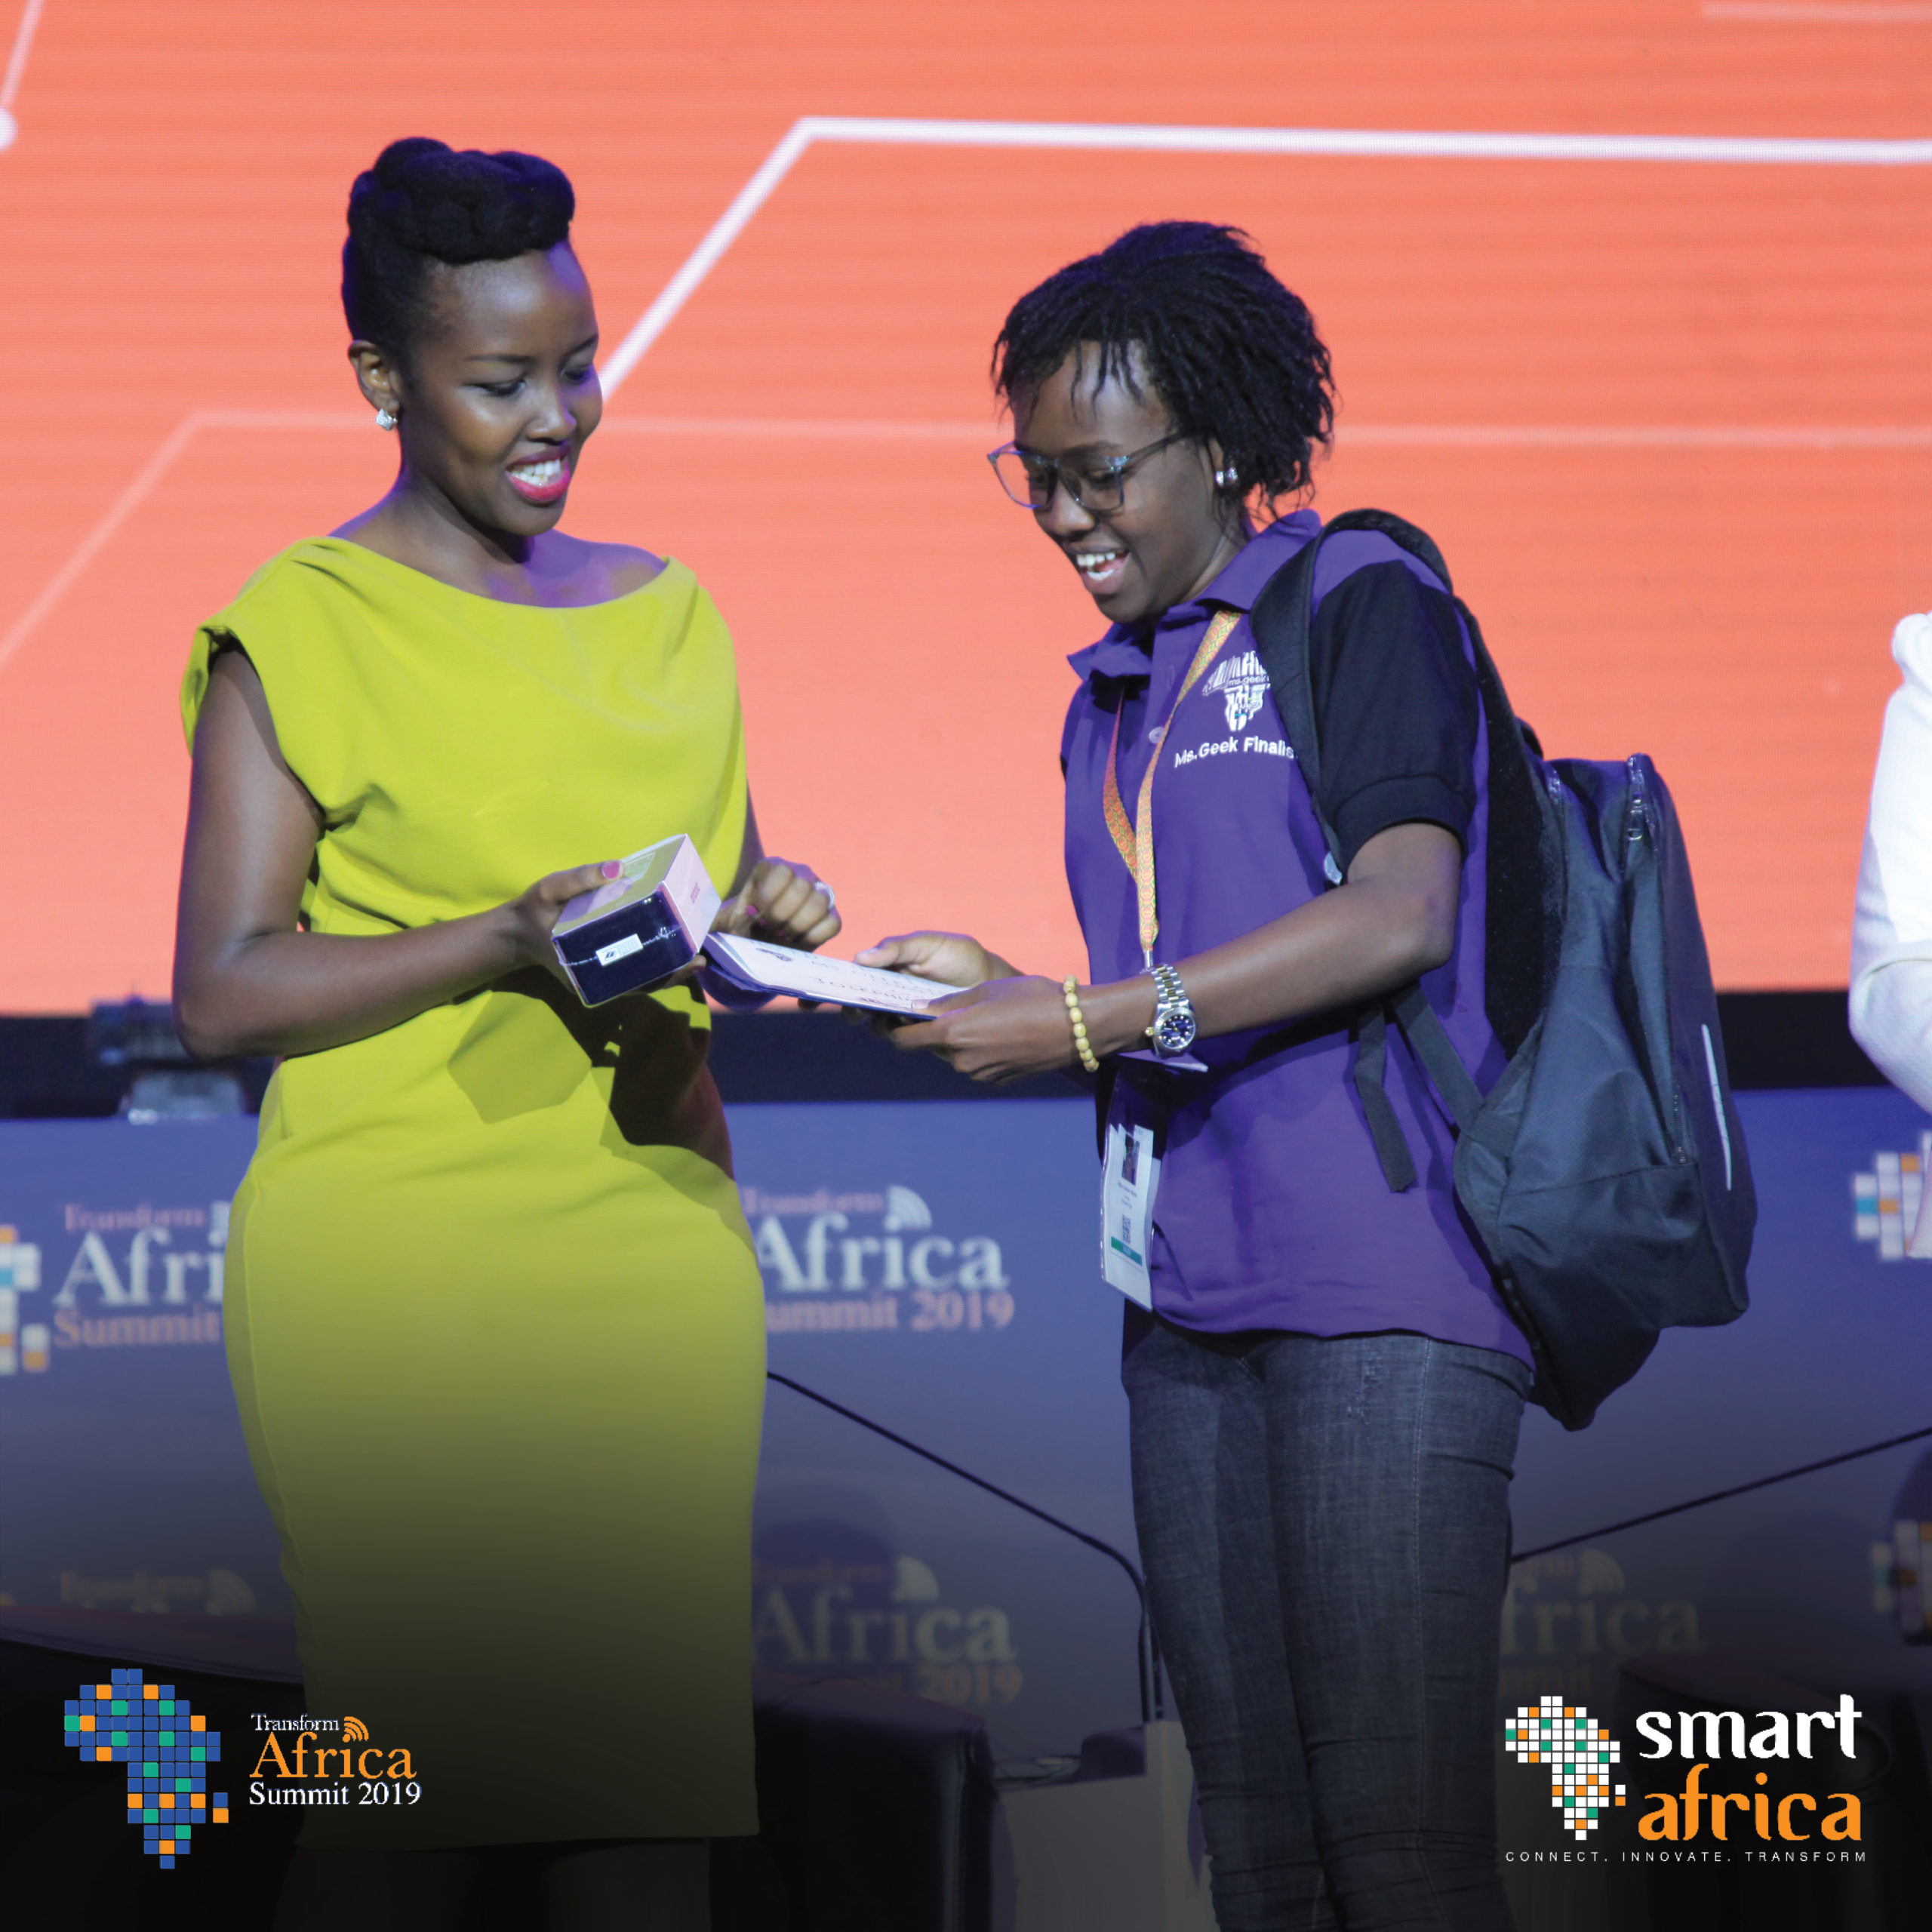 Impressions from the Transform Africa Summit Kigali 2019